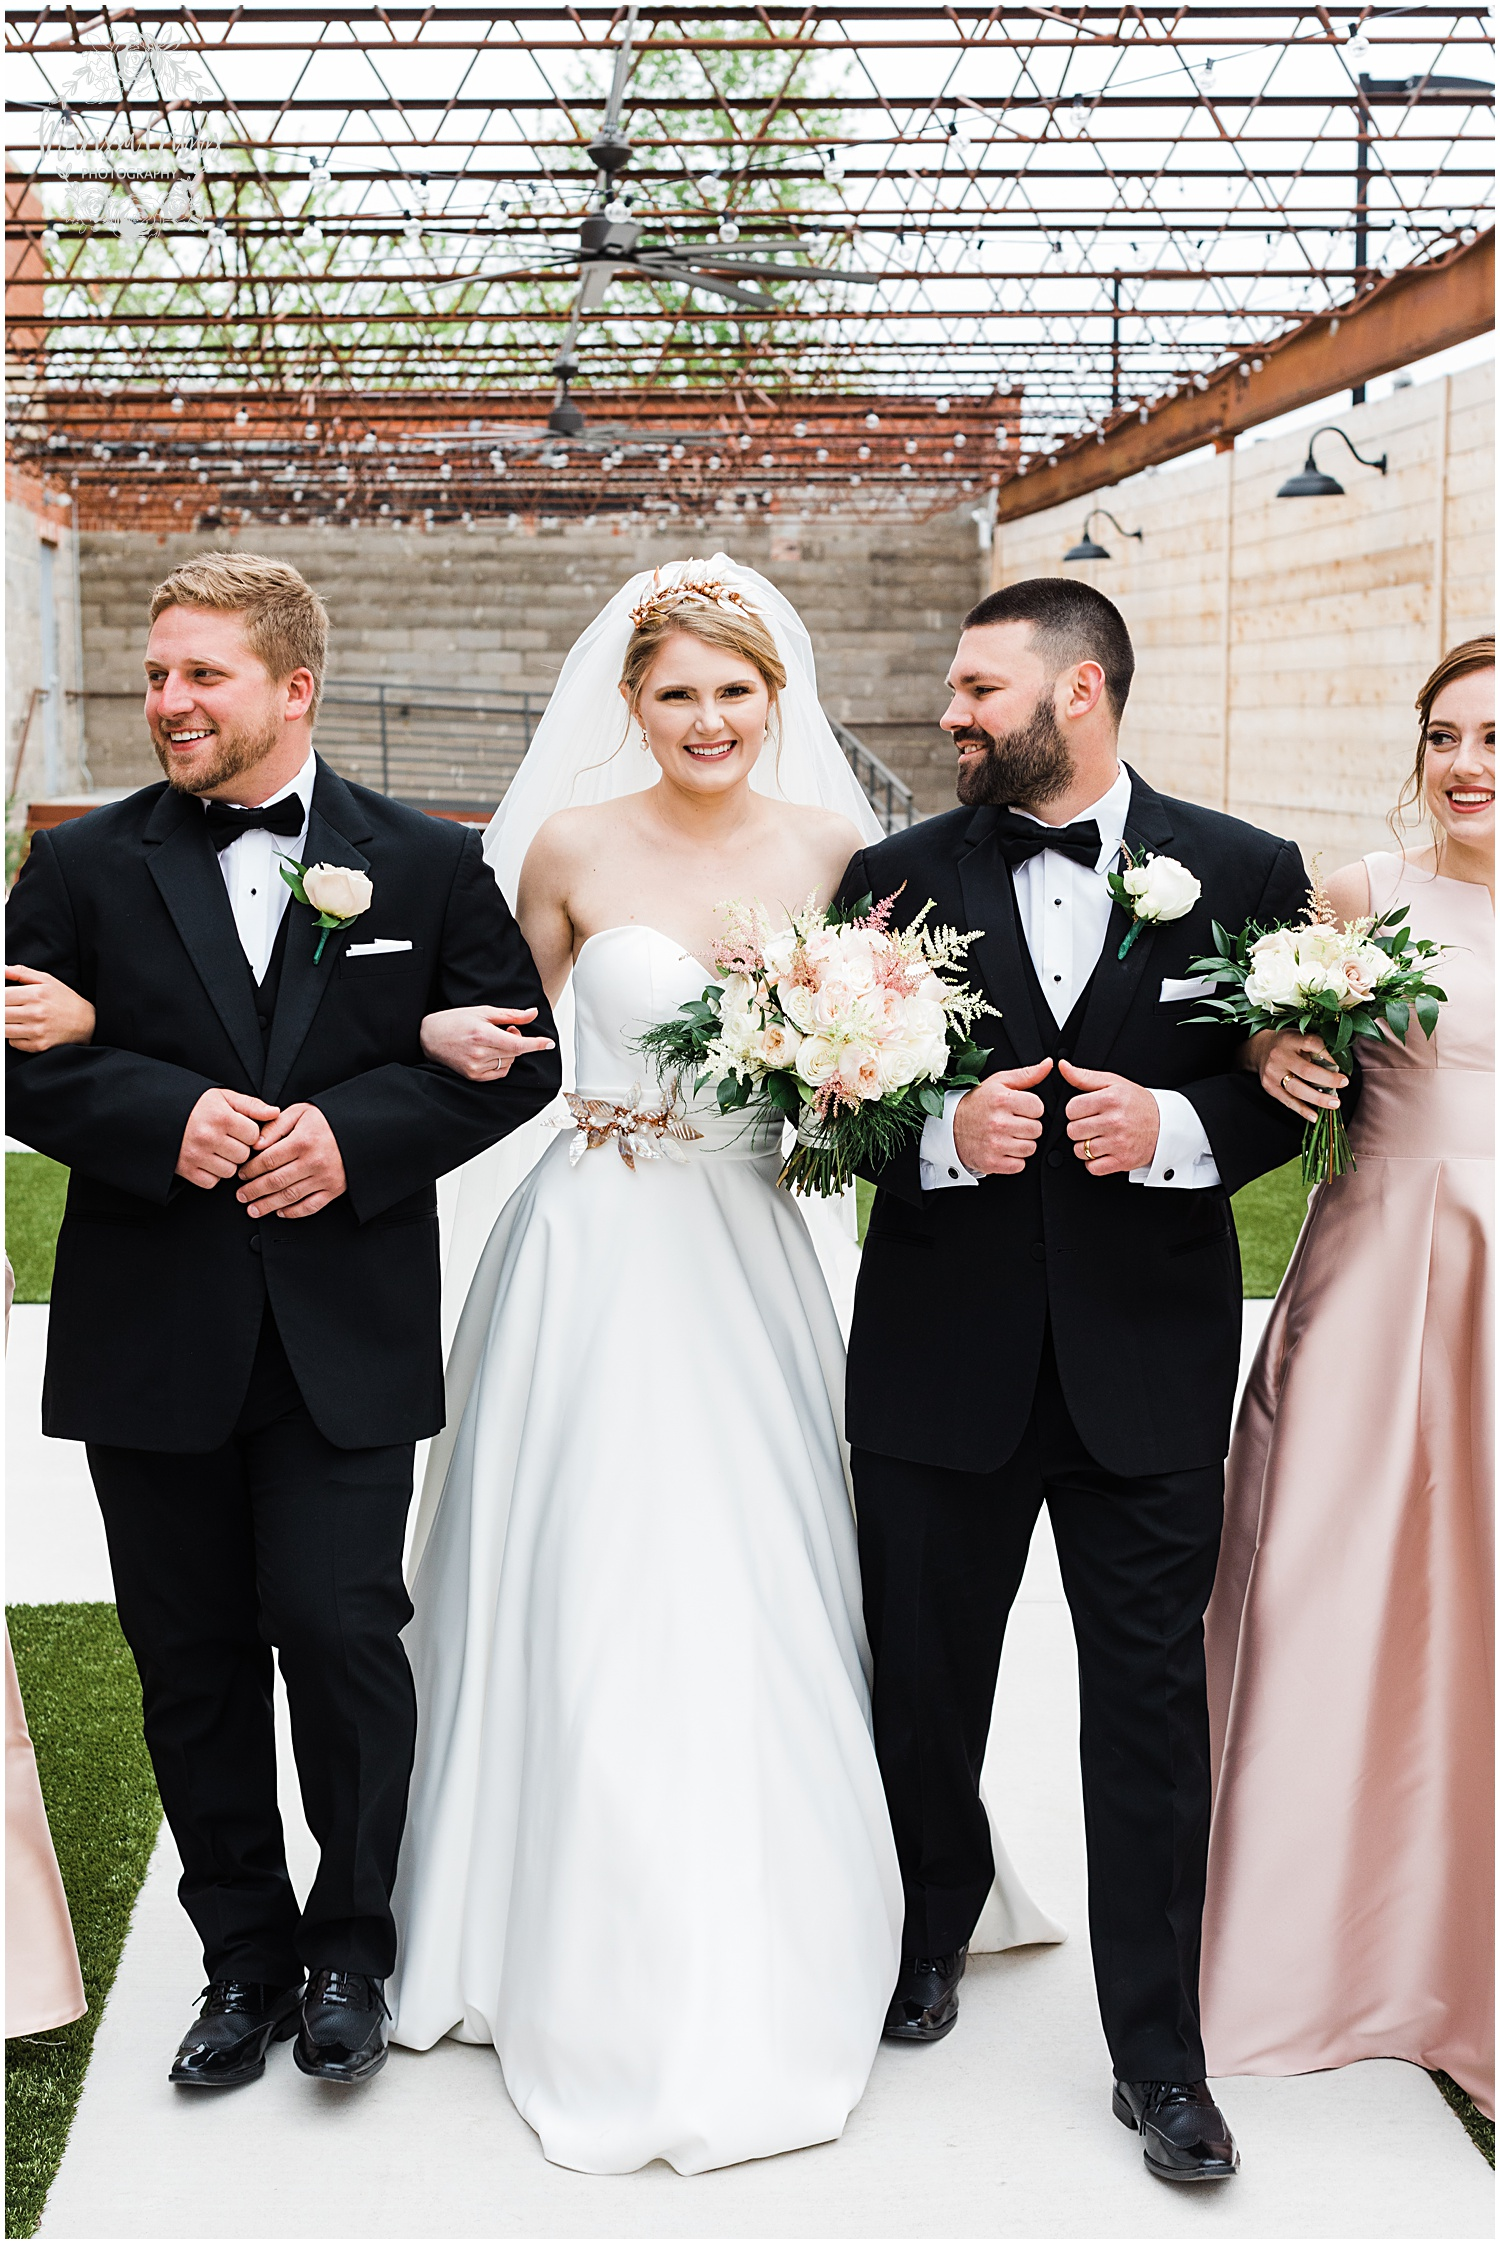 ABBY & CHARLIE WEDDING | THE HUDSON EVENT SPACE WEDDING | MARISSA CRIBBS PHOTOGRAPHY_7524.jpg